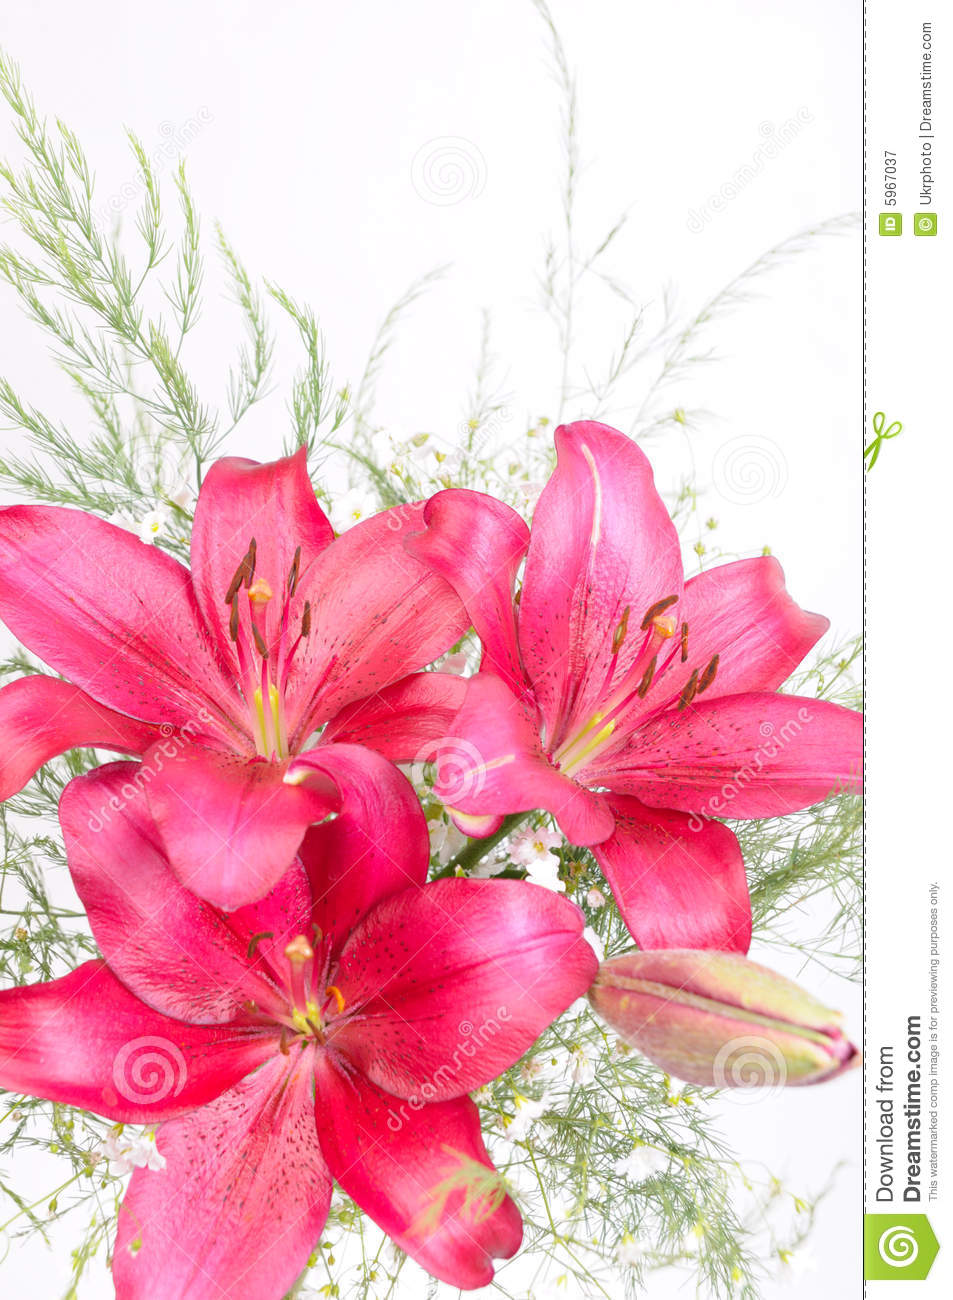 Bouquet of lily flowers stock image image of summer color 5967037 bouquet of lily flowers izmirmasajfo